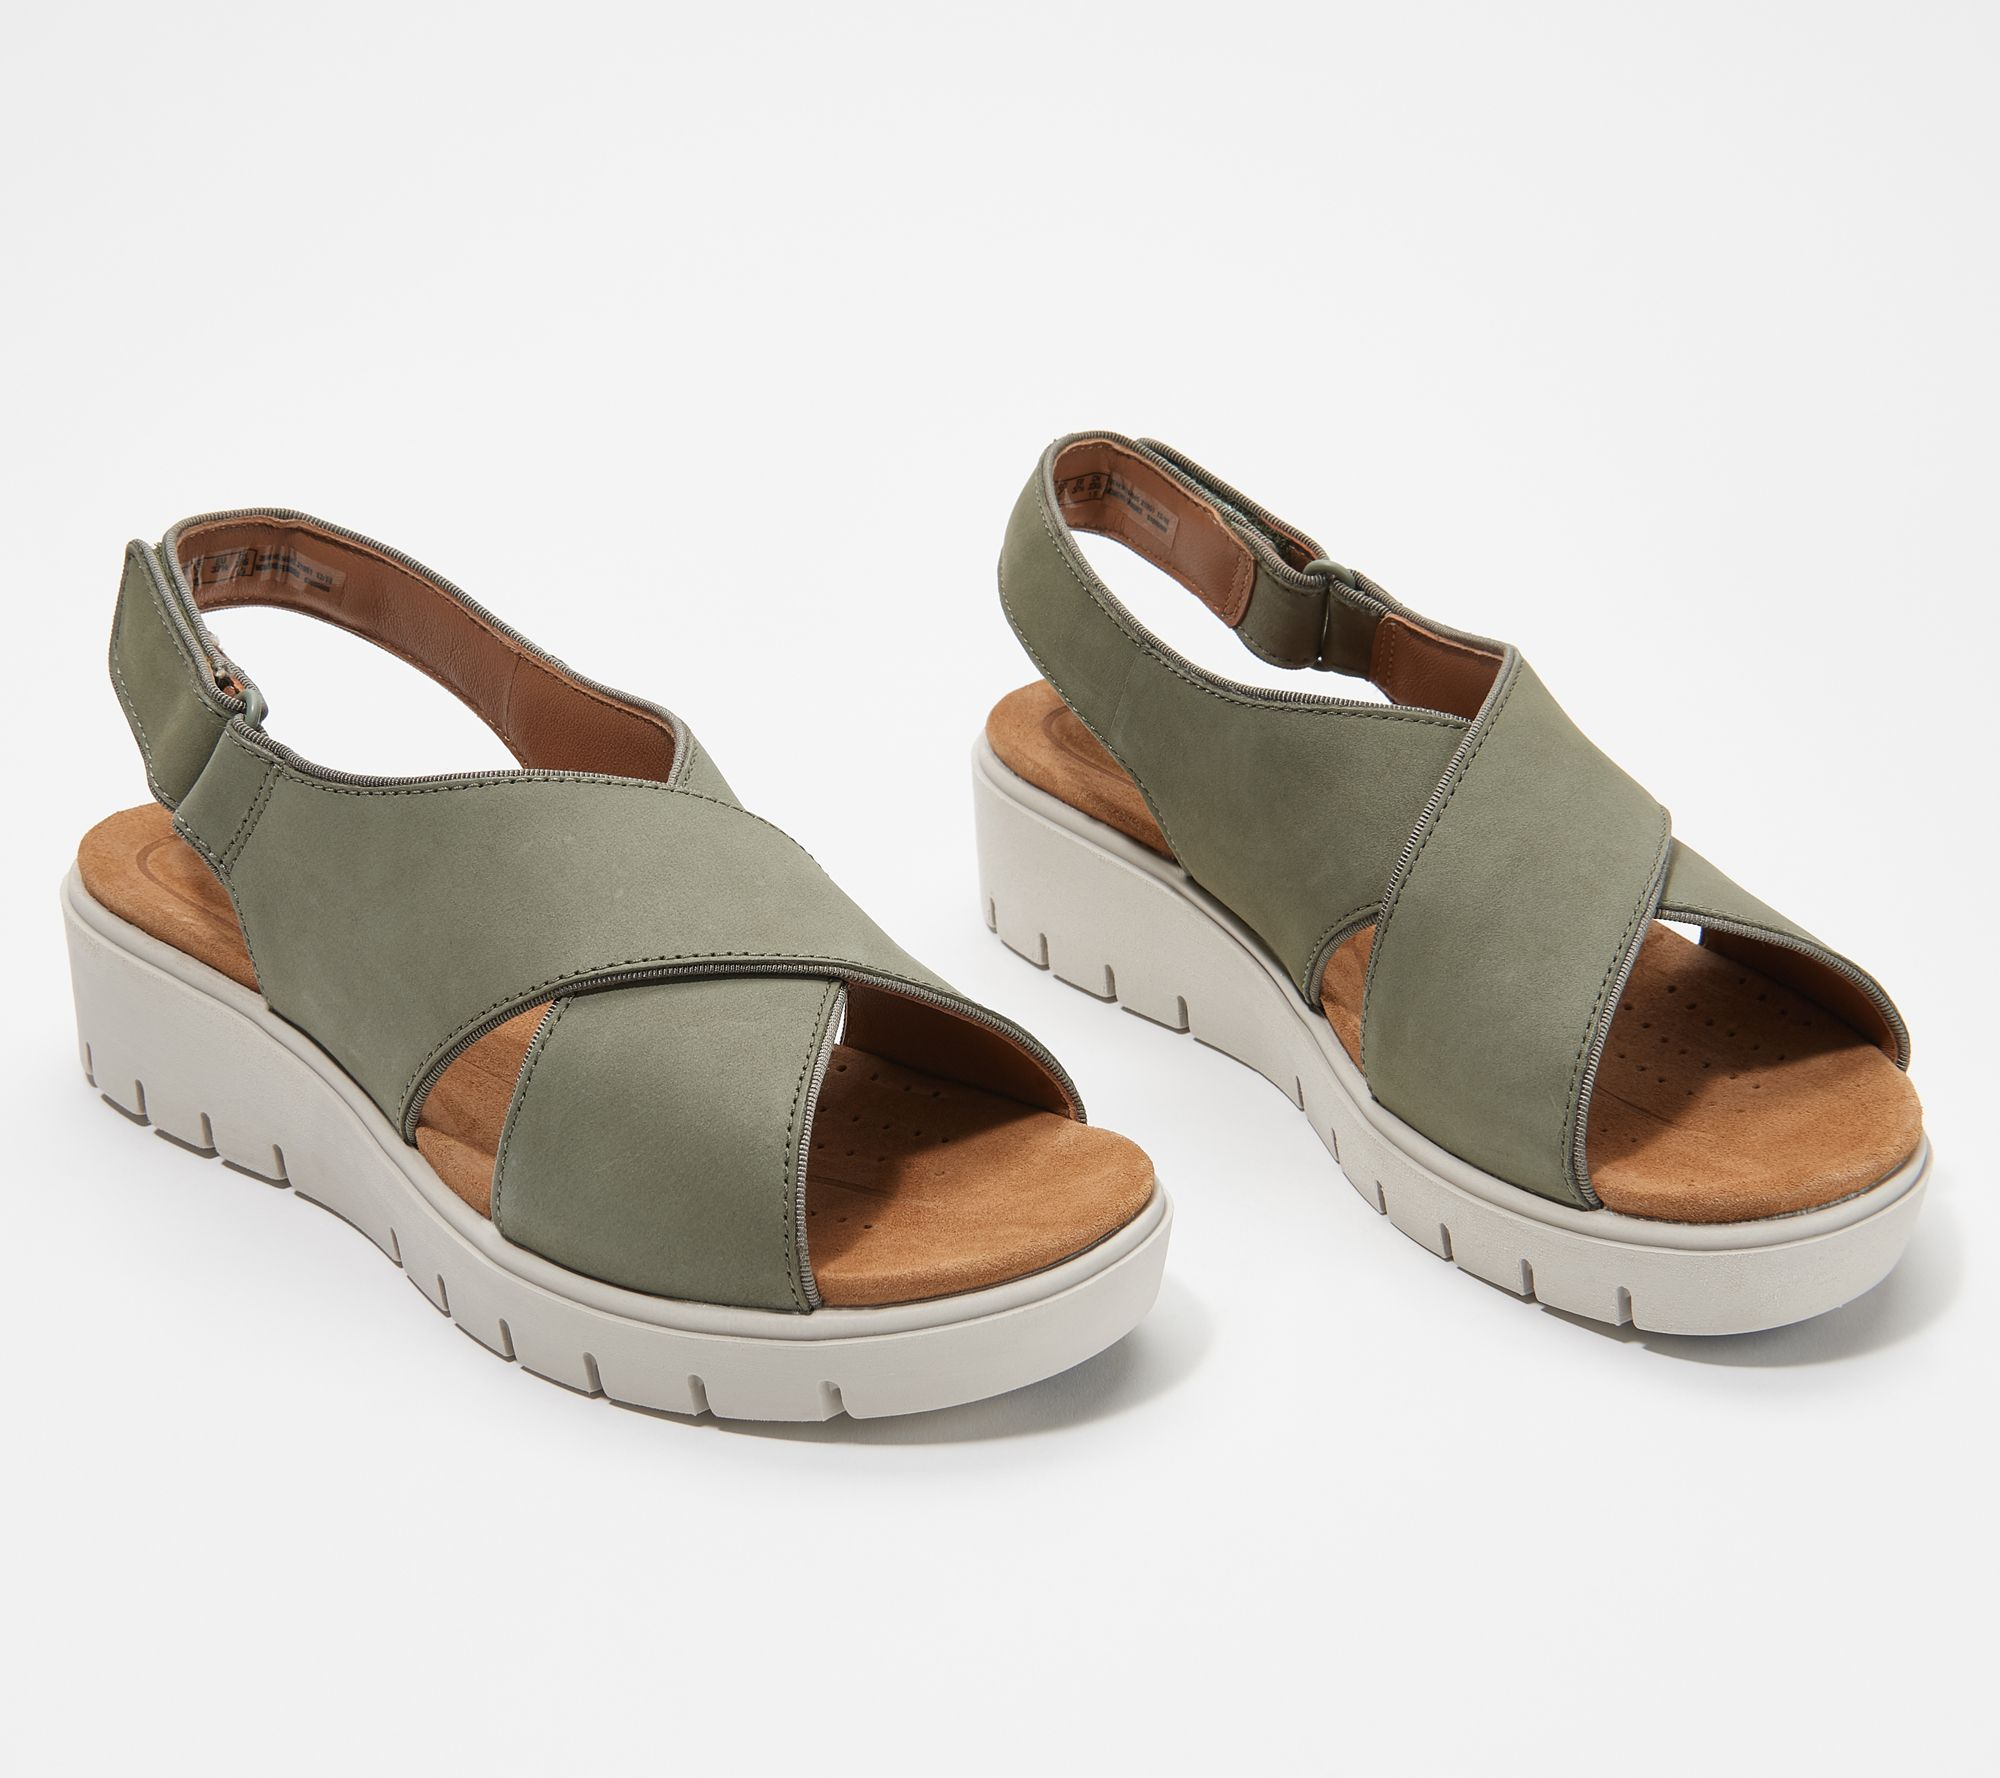 reasonable price suitable for men/women detailed look Clarks Unstructured Leather Cross- Strap Sandals - Un Karley Sun — QVC.com